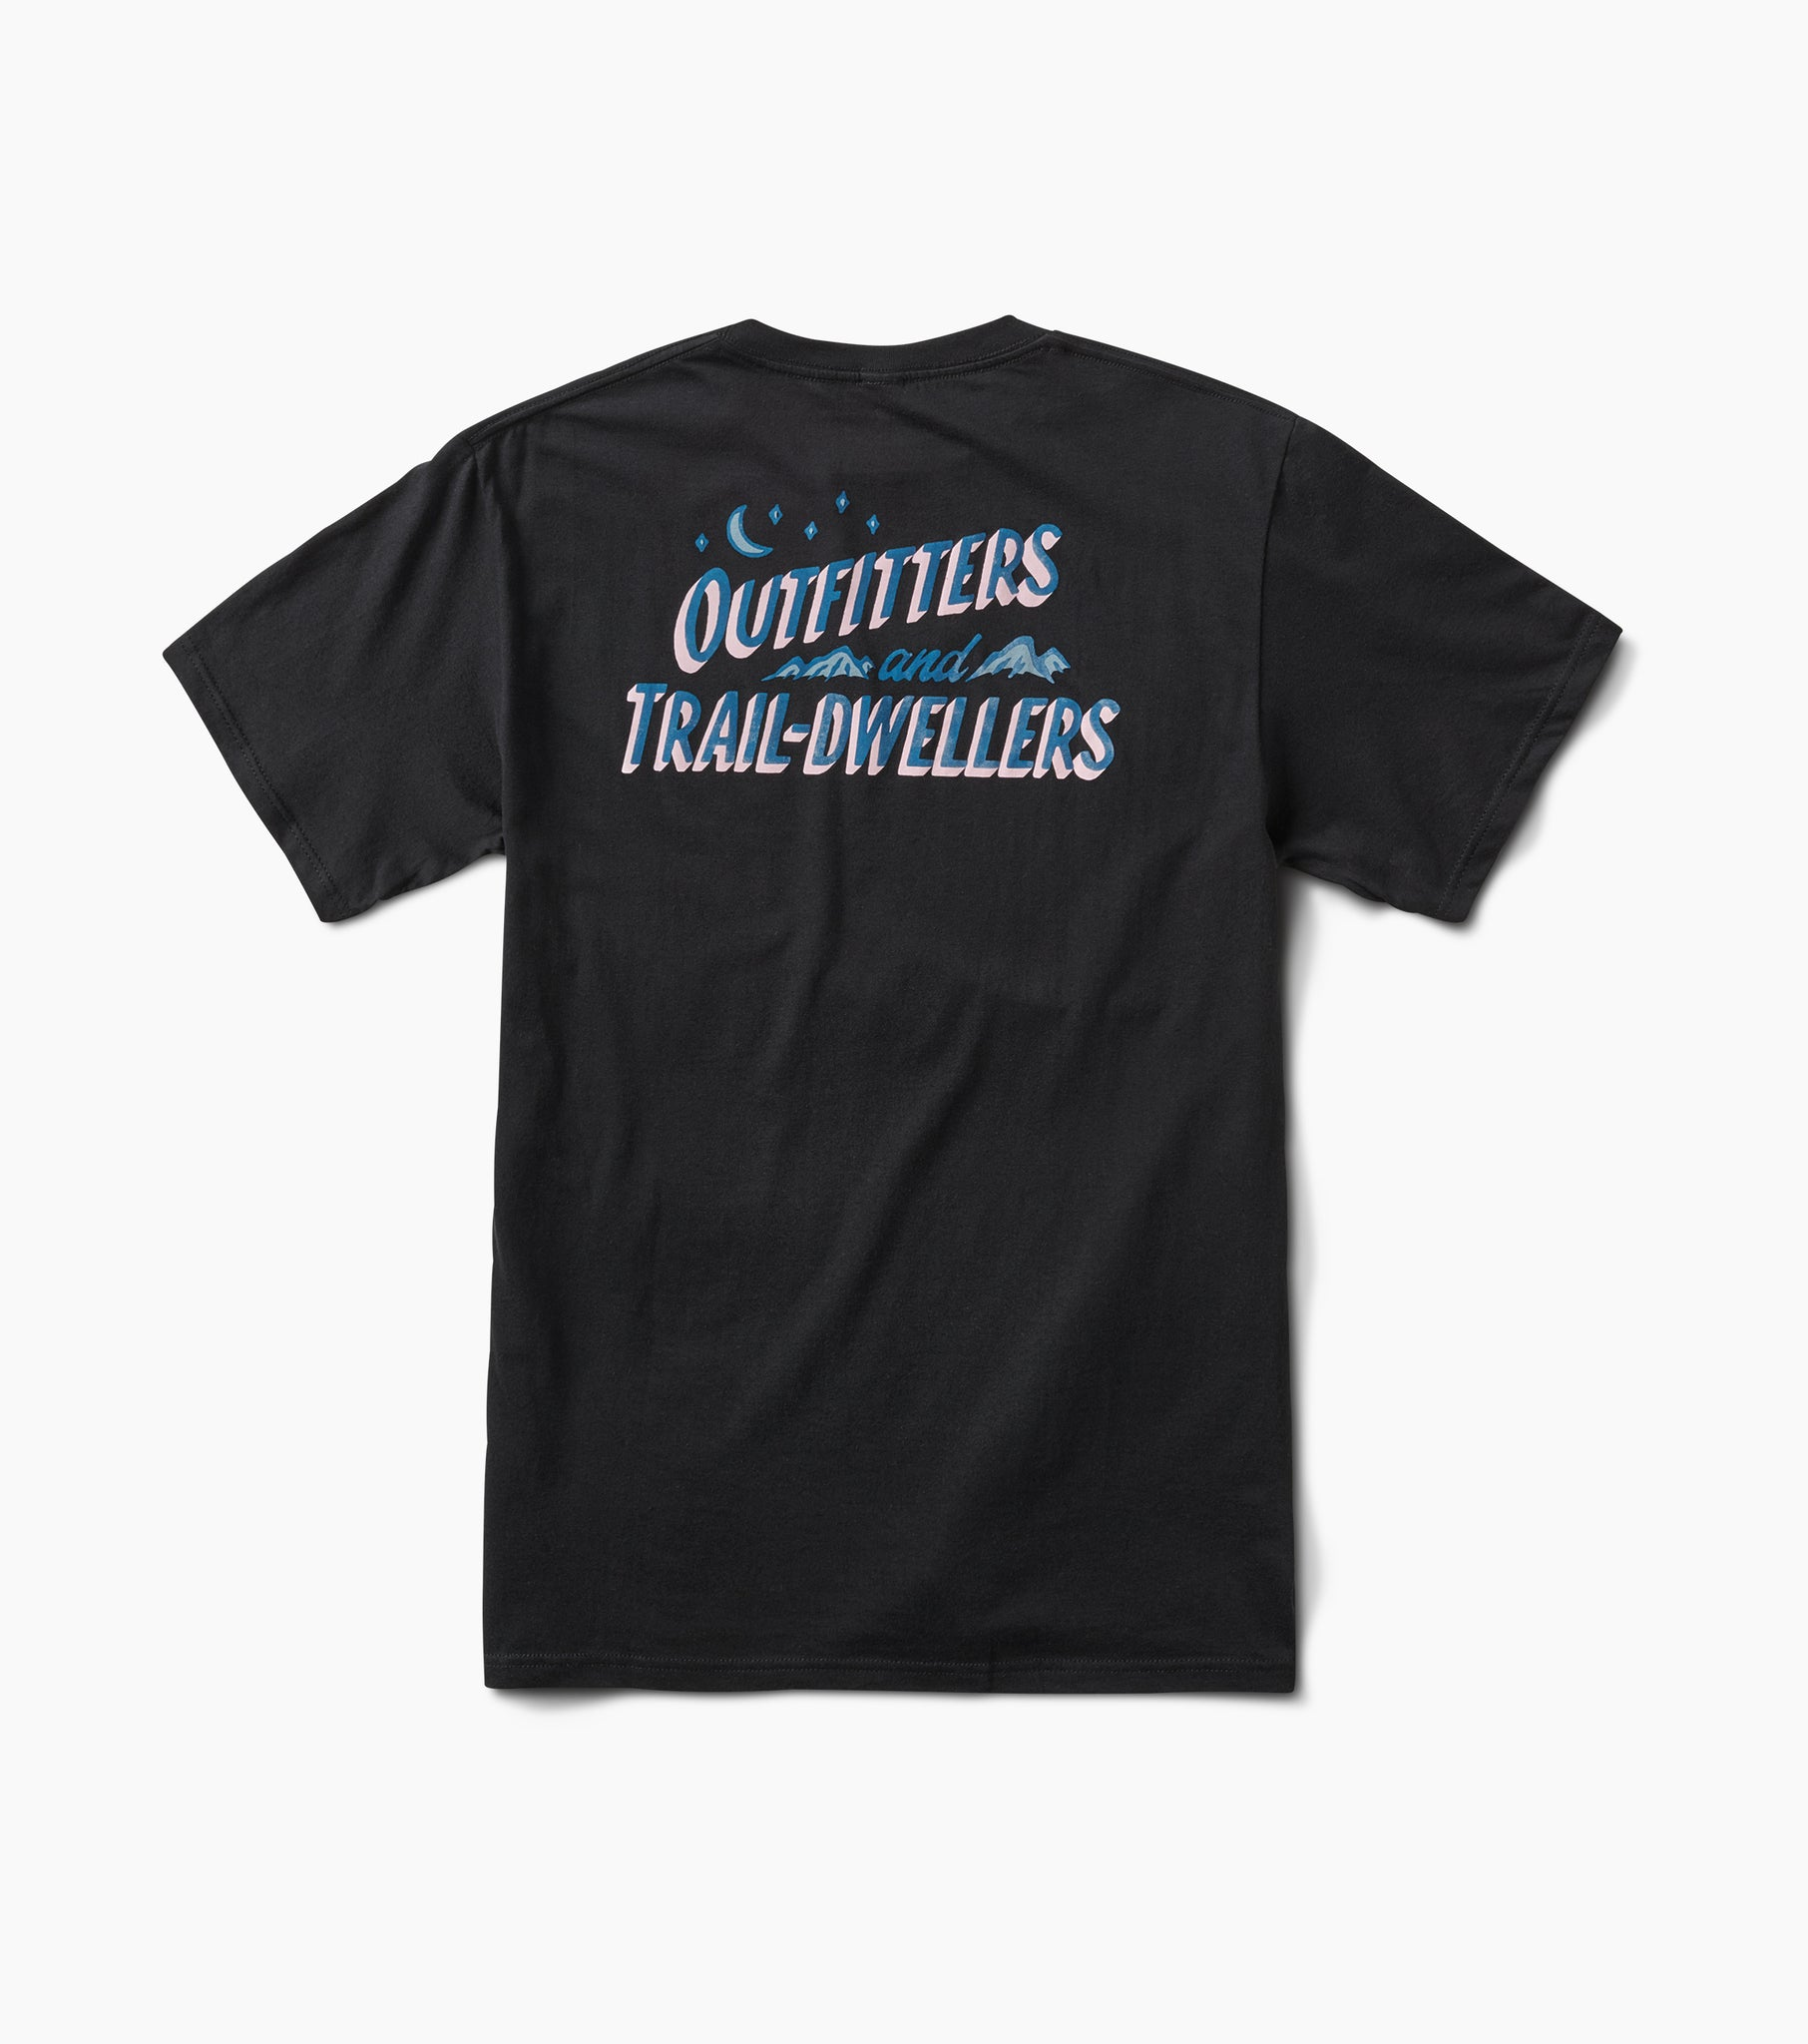 Roark Outfitters and Trail Dwellers T-shirt - Black